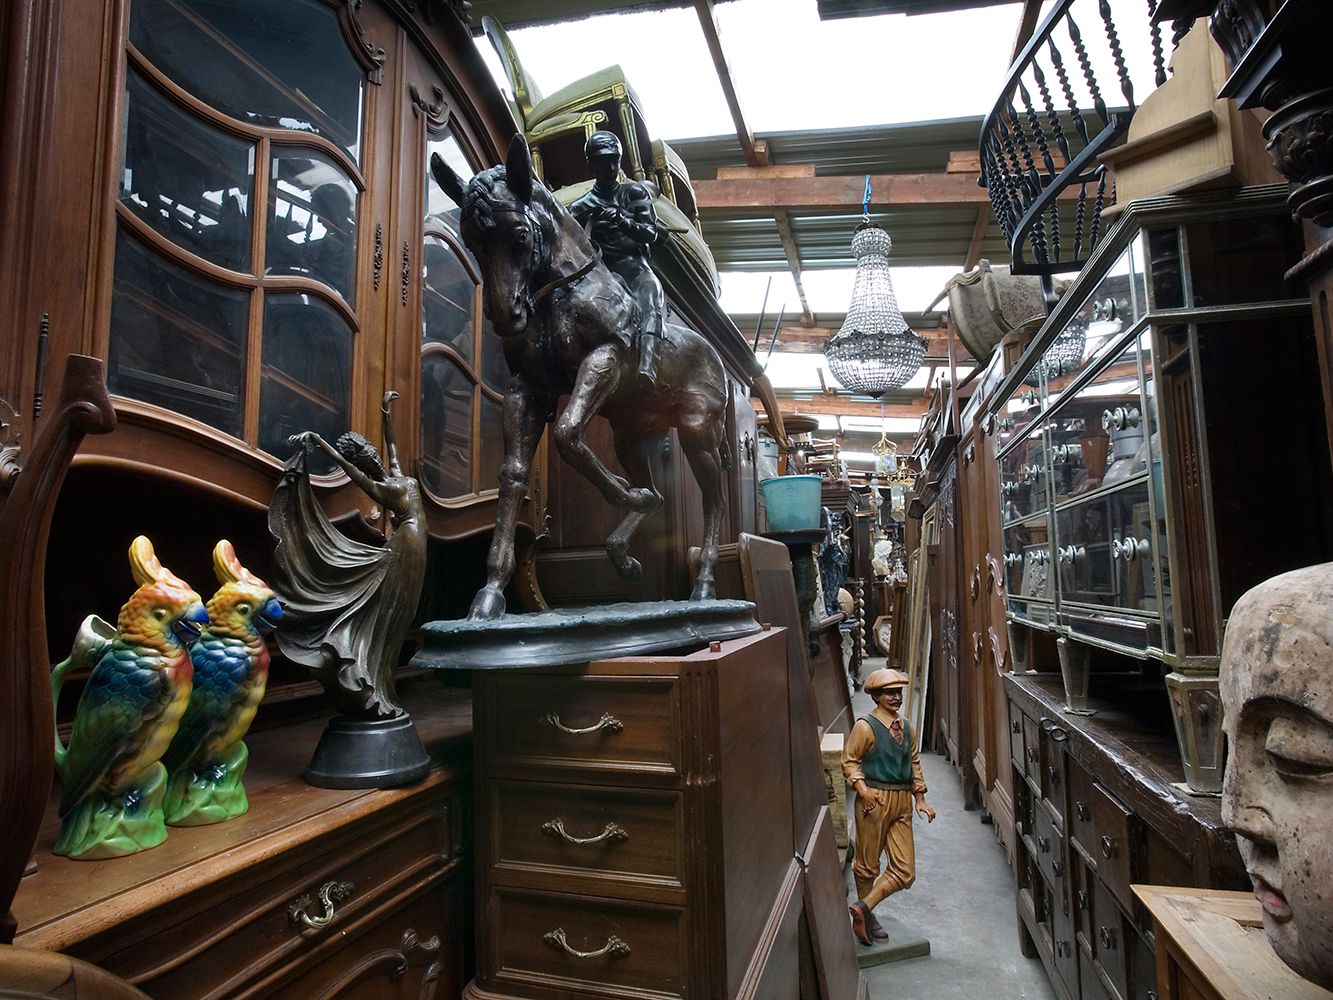 How To Identify And Research Your Antiques